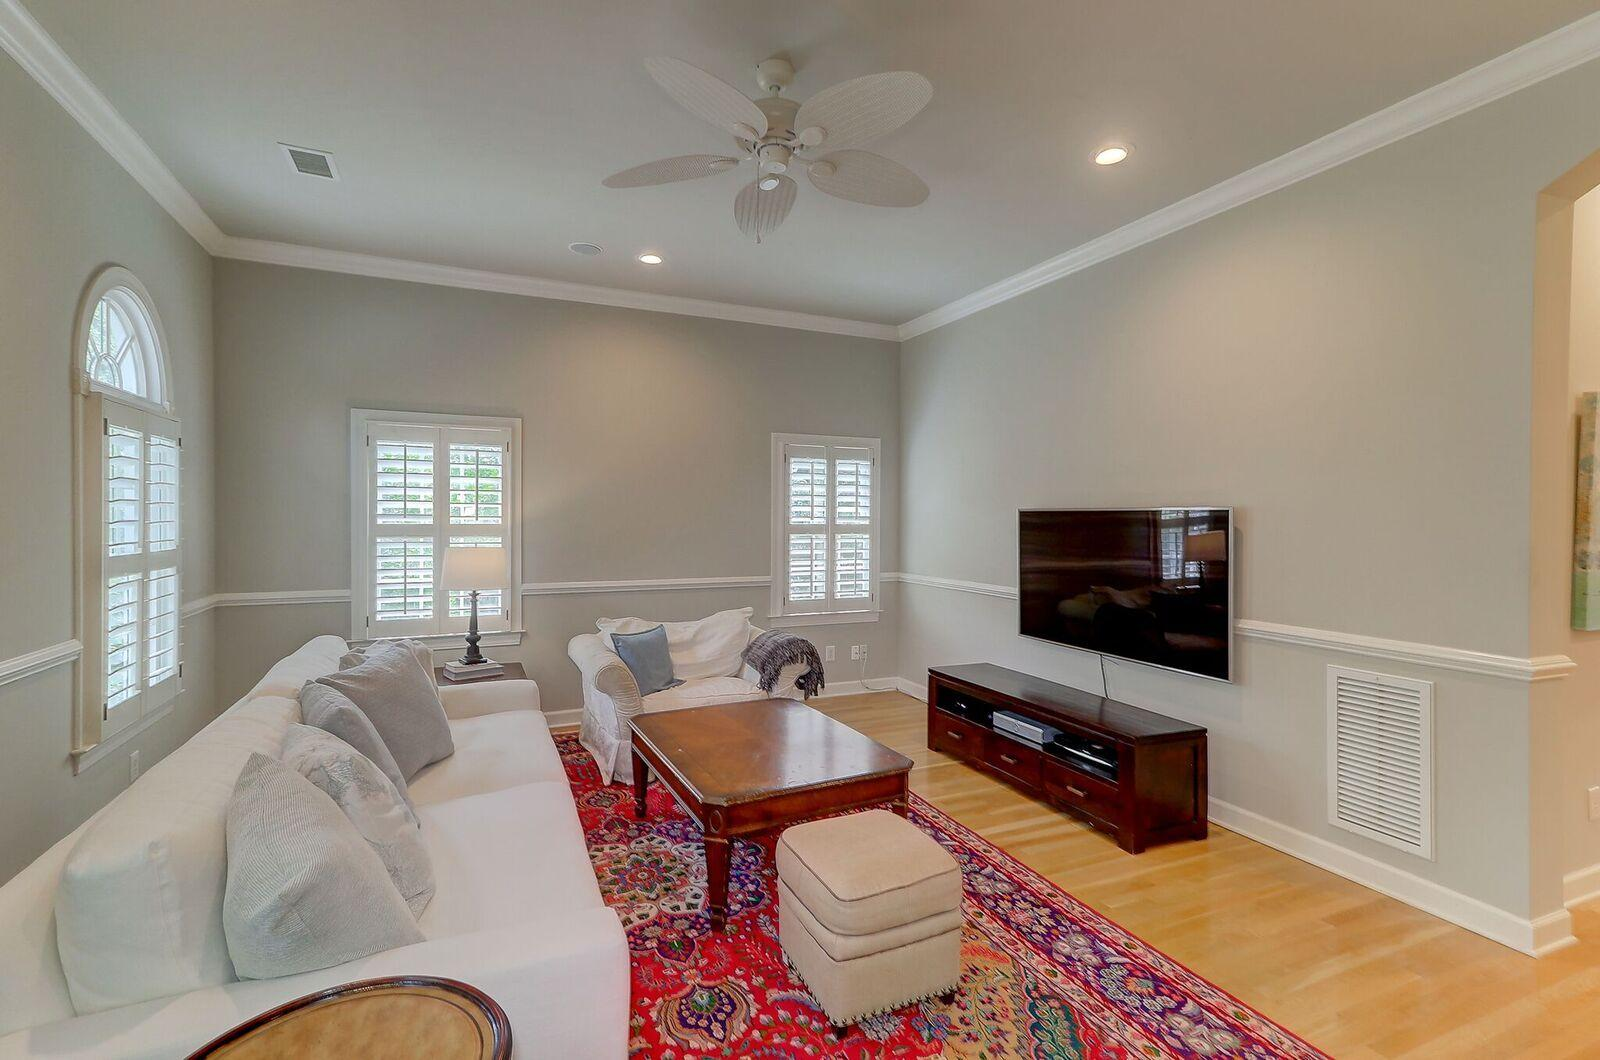 Wild Dunes Homes For Sale - 60 Seagrass, Isle of Palms, SC - 6